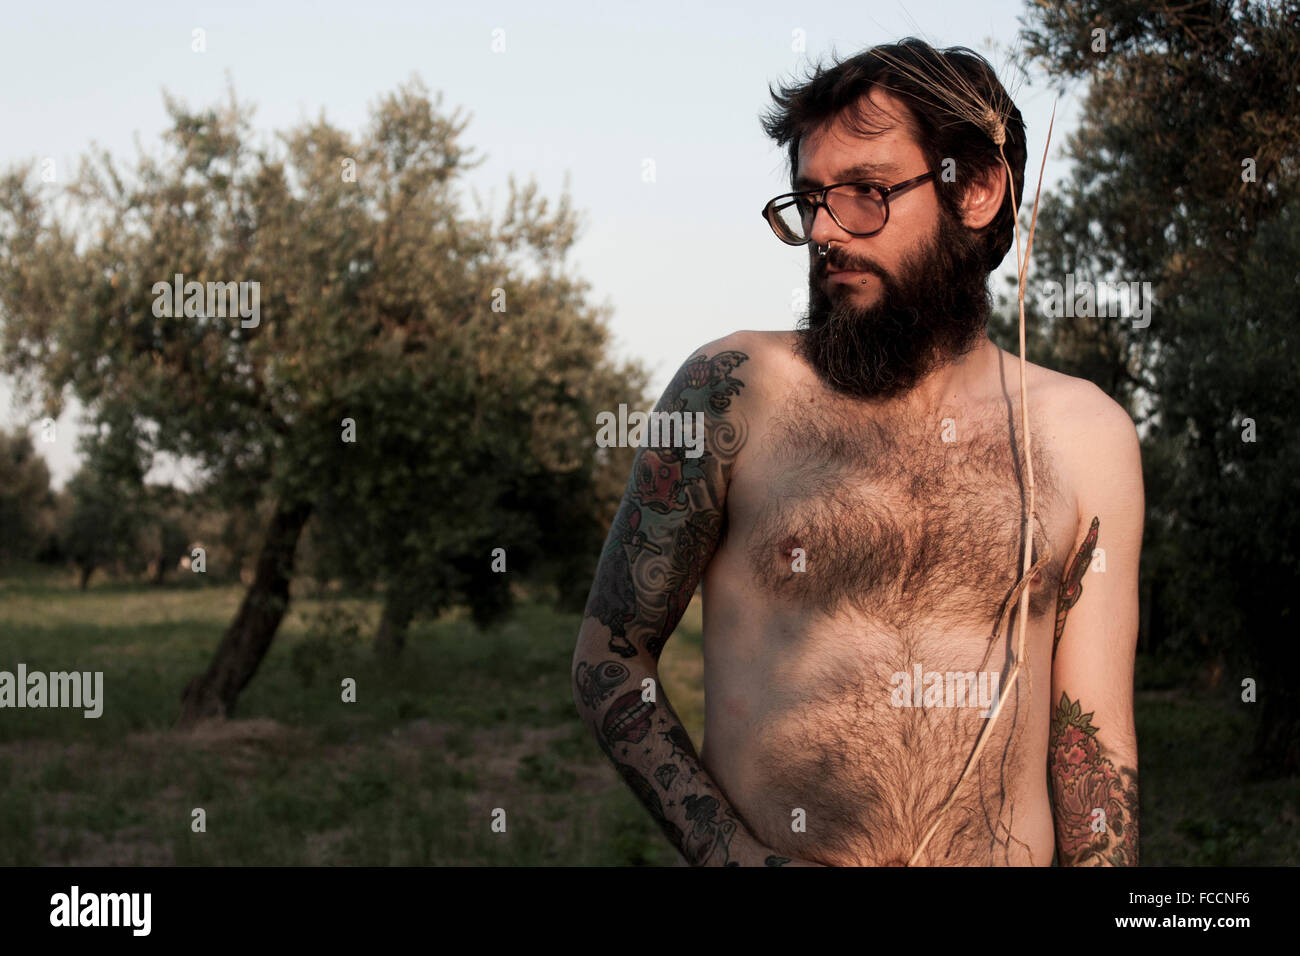 Shirtless Man Standing On Grassy Field Photo Stock